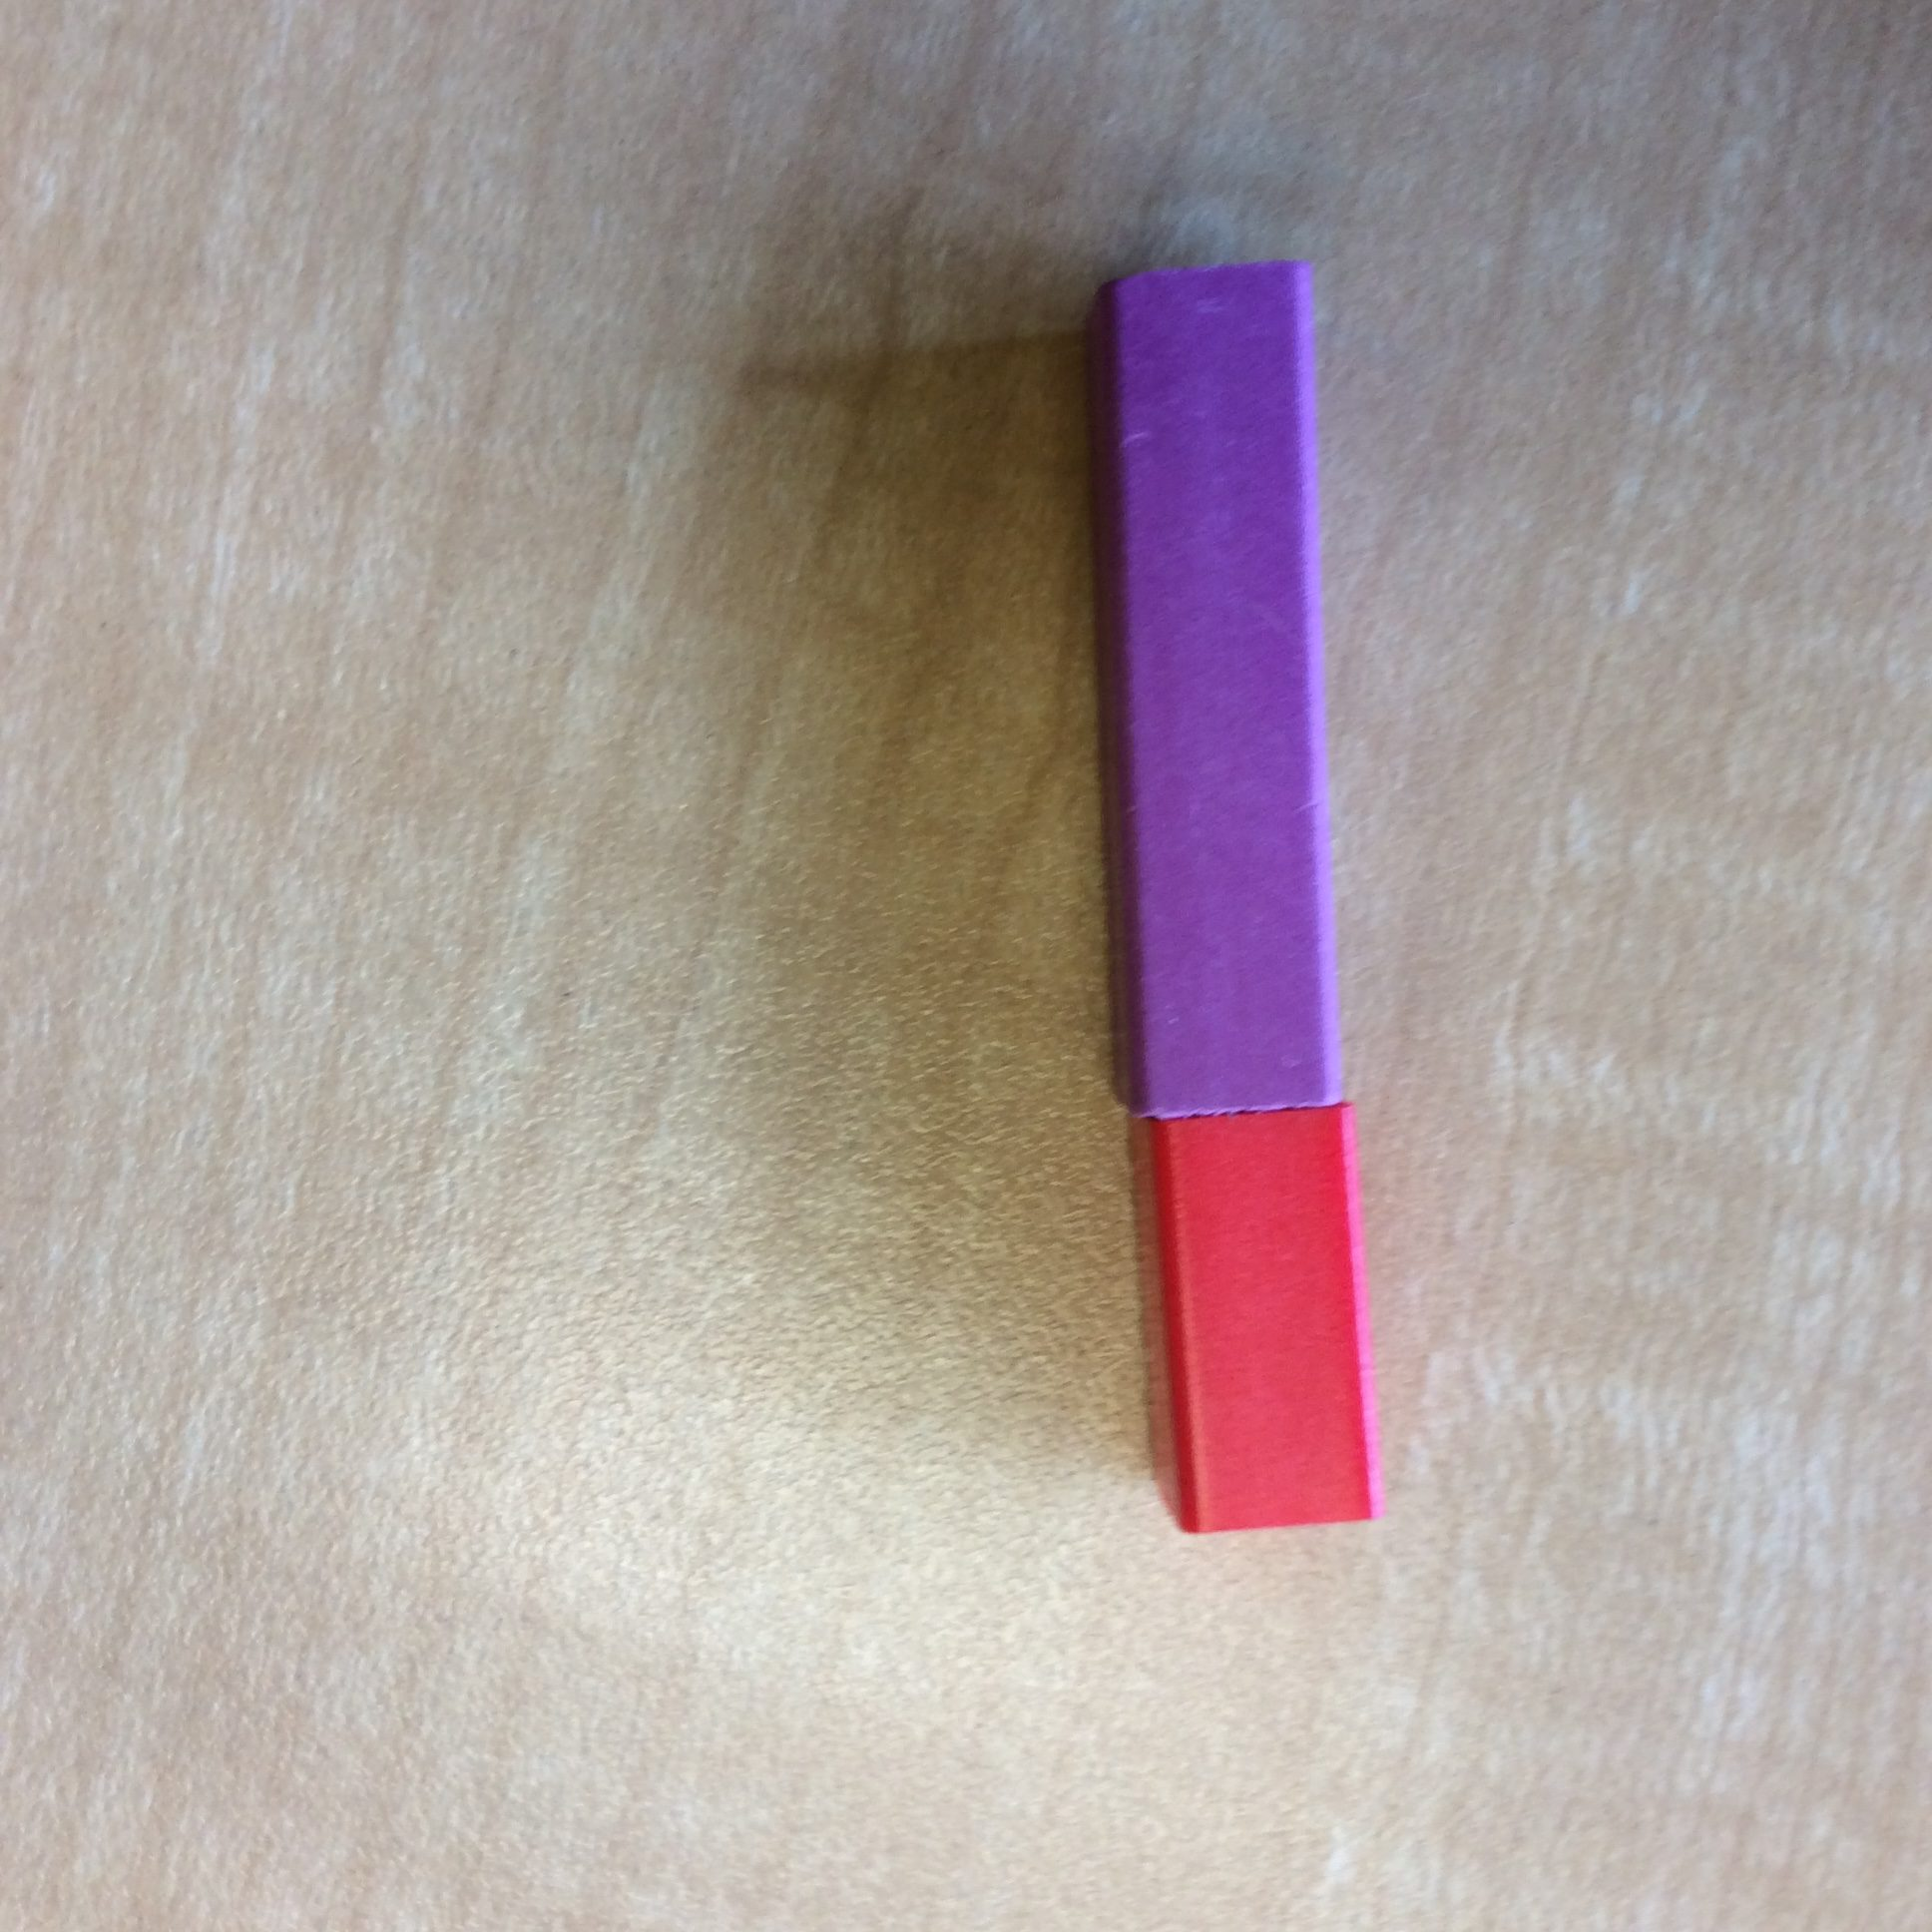 If the purple rod is 2/3 of the whole, what does the whole look like?